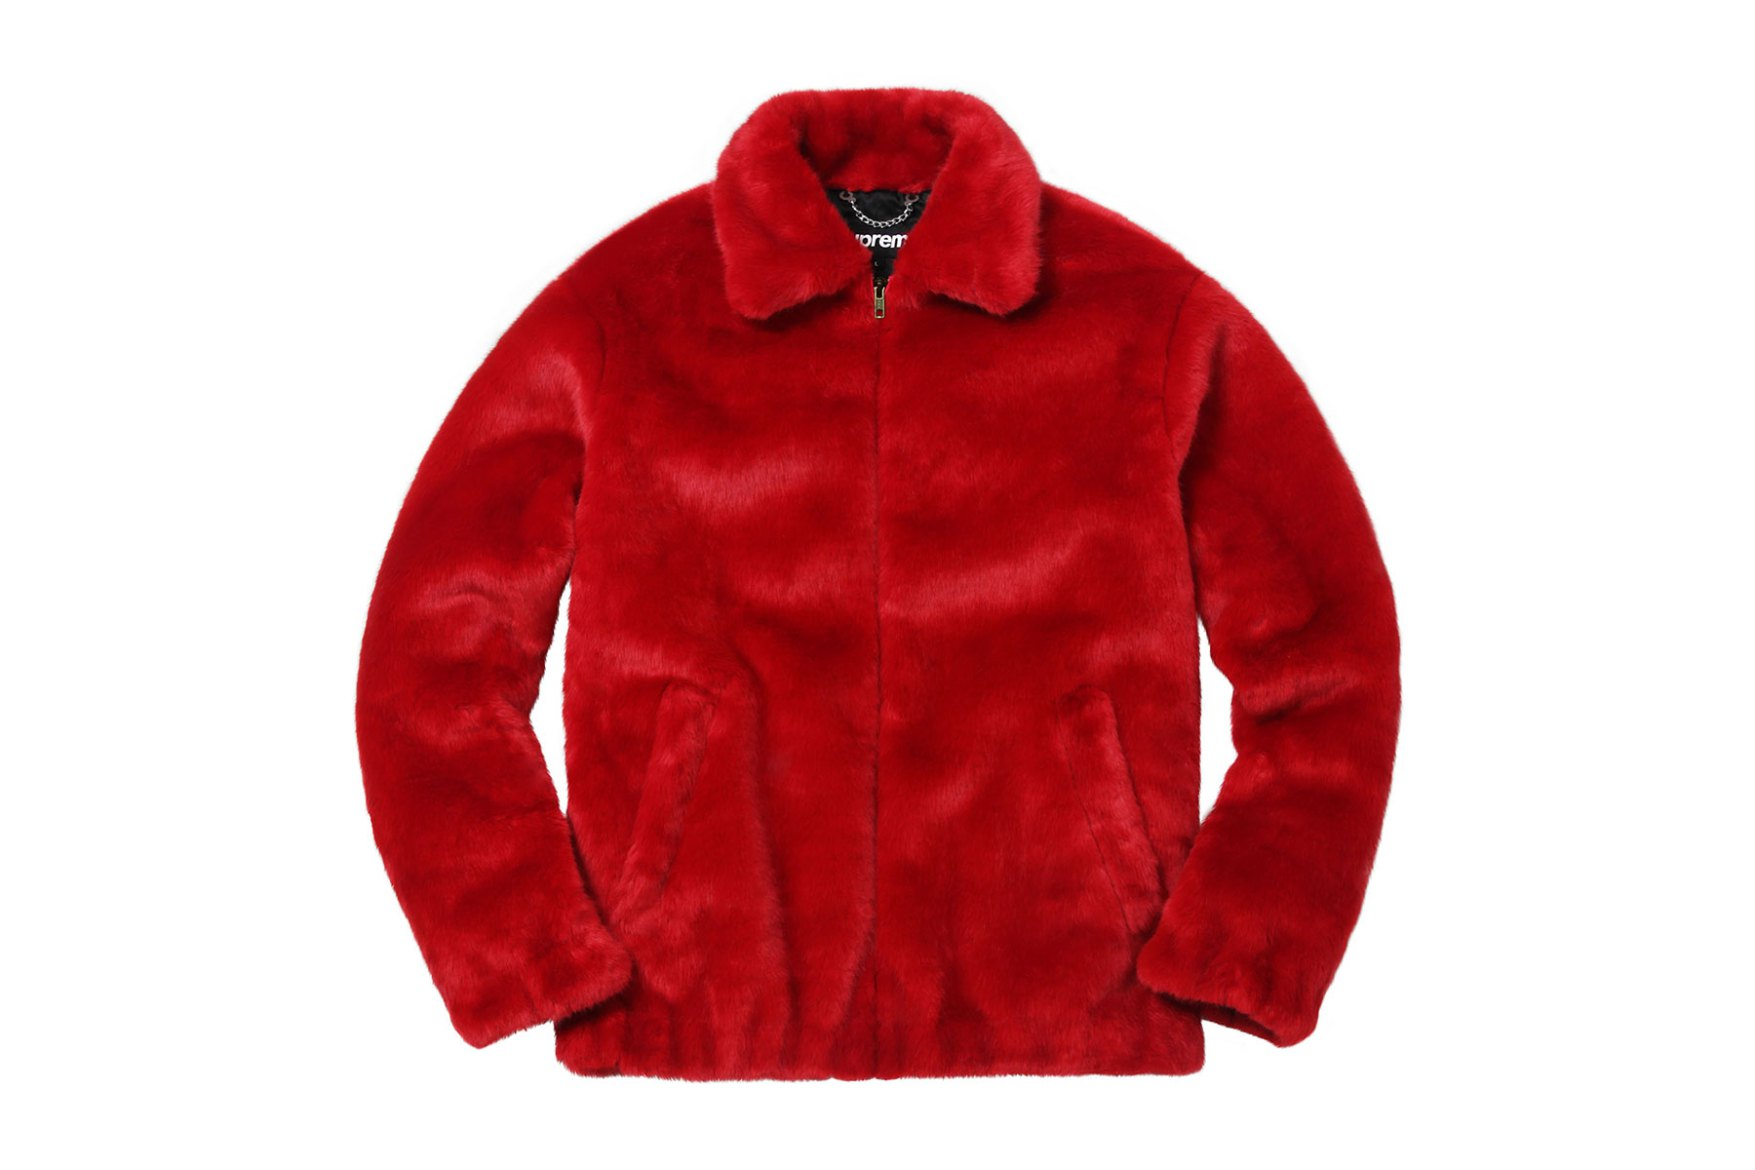 supreme 2017 red mink jacket.jpg